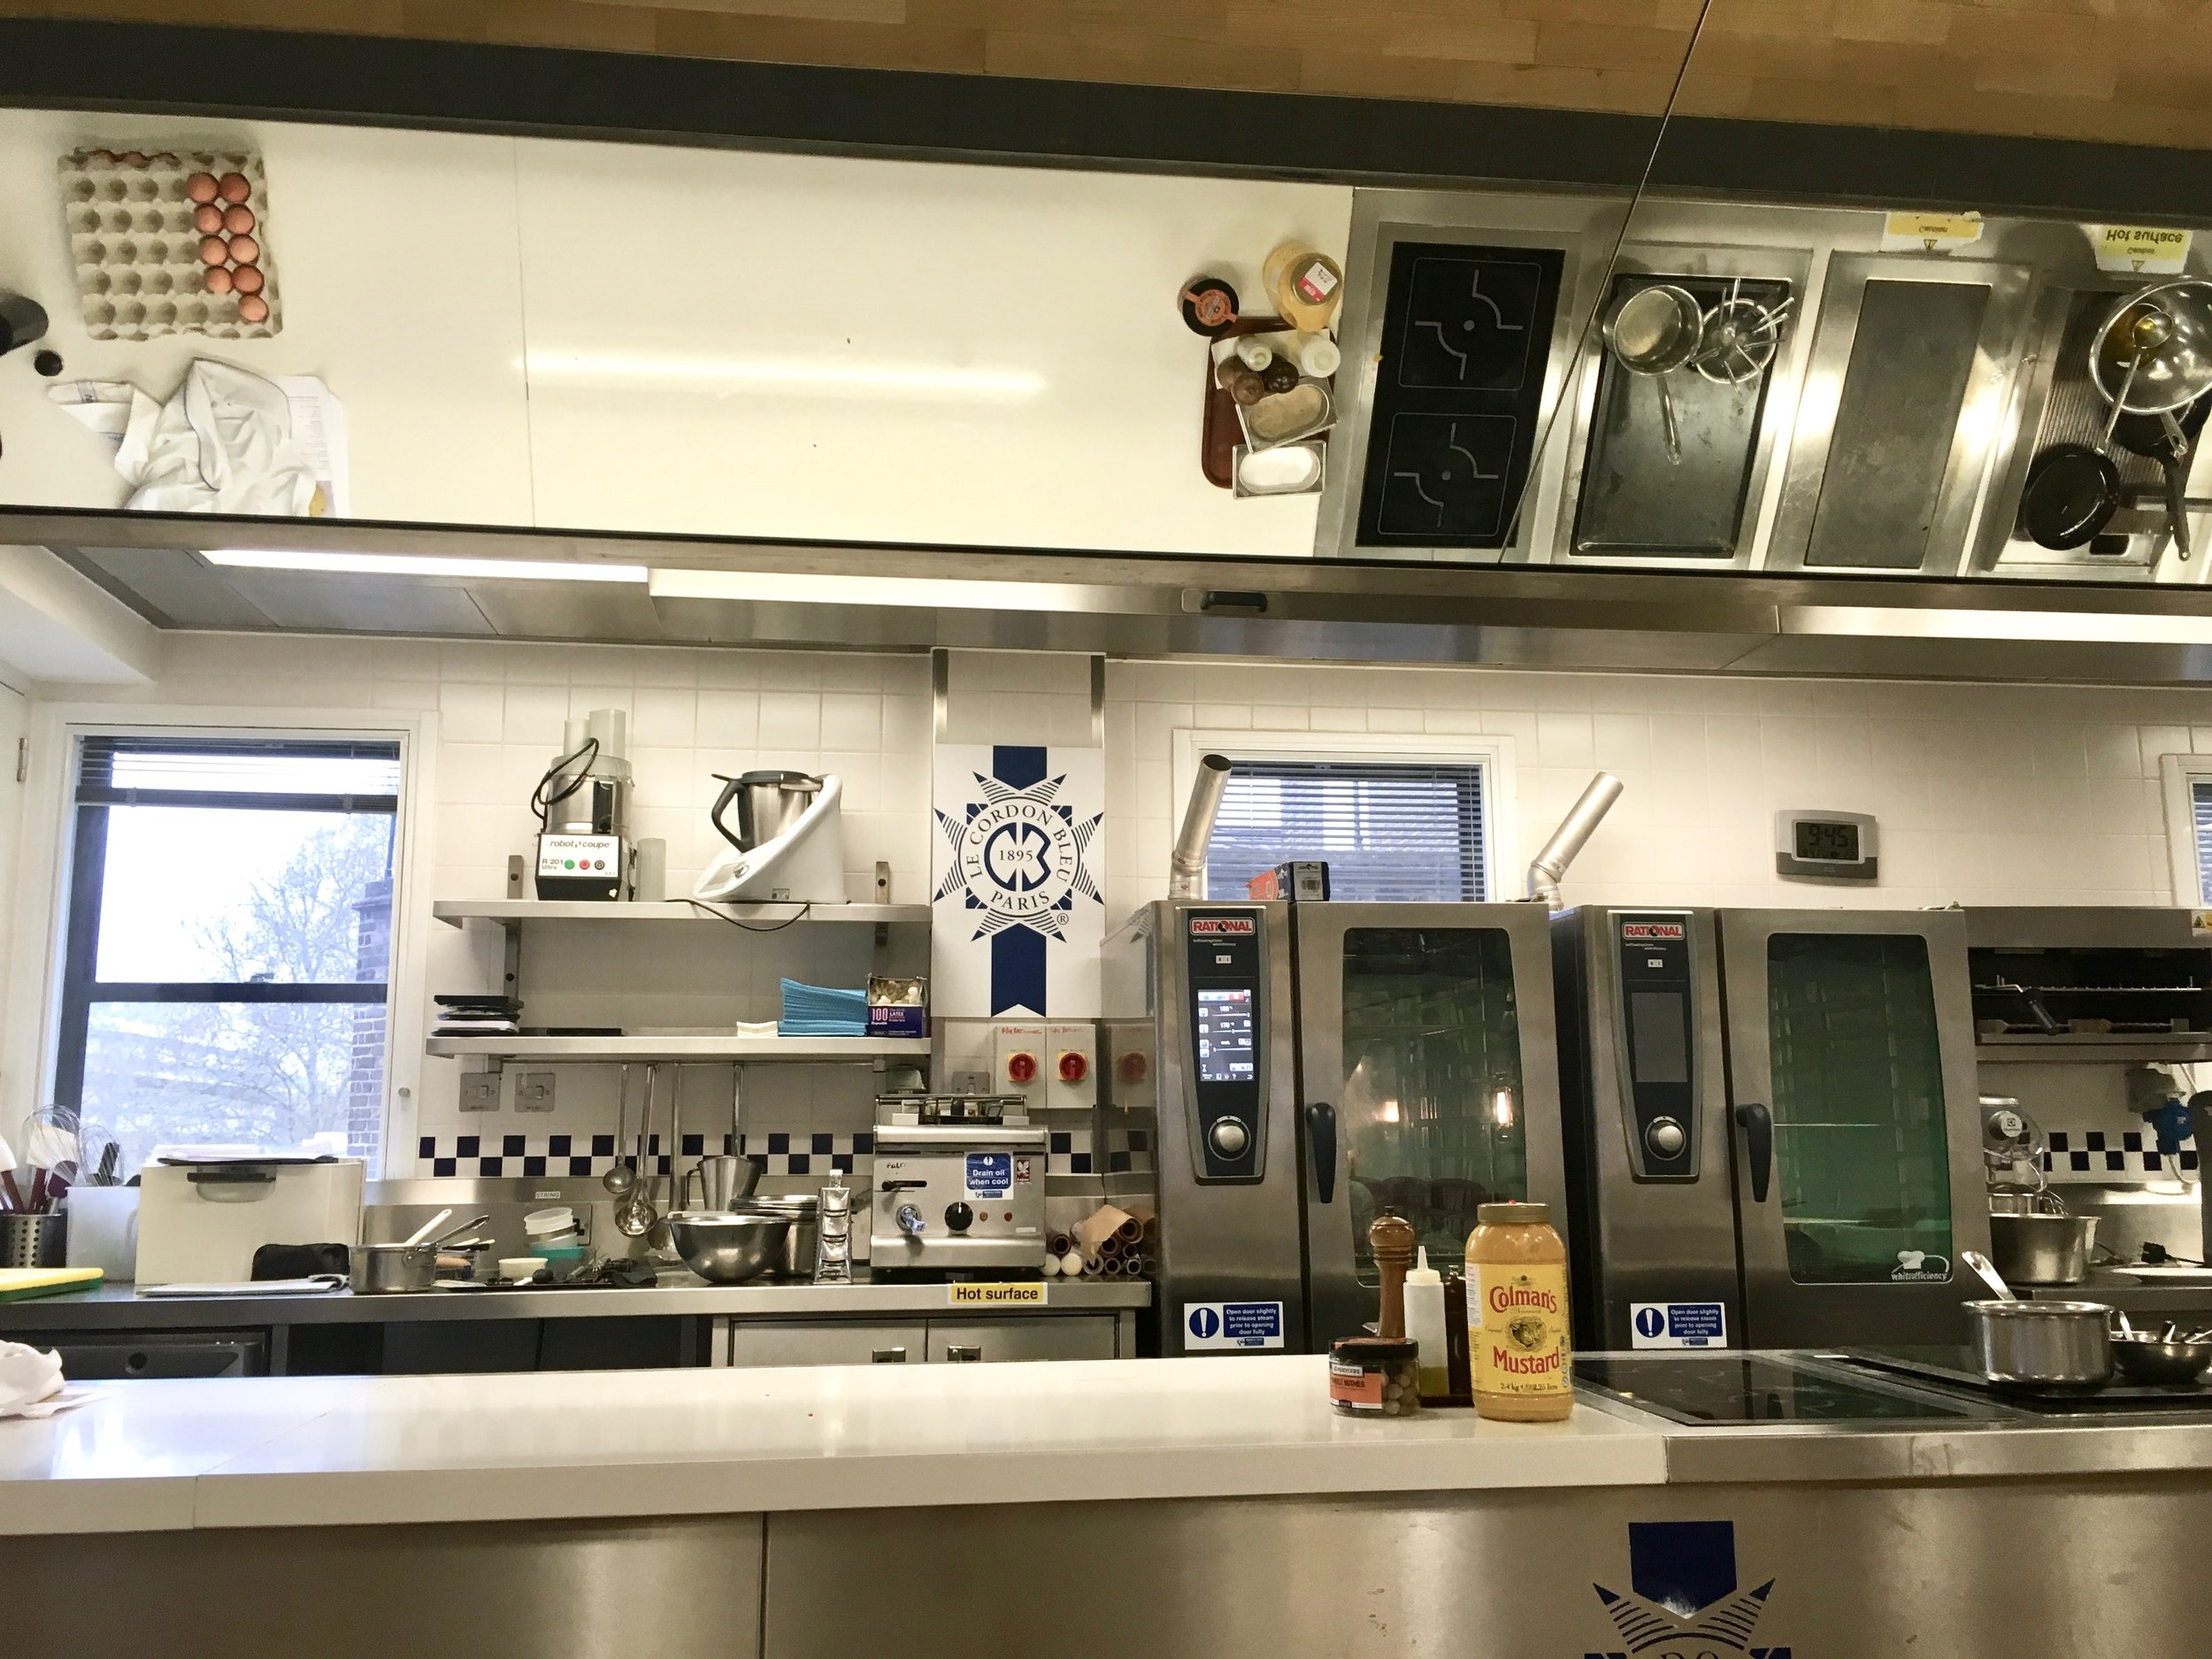 A demo kitchen at Le Cordon Bleu, London